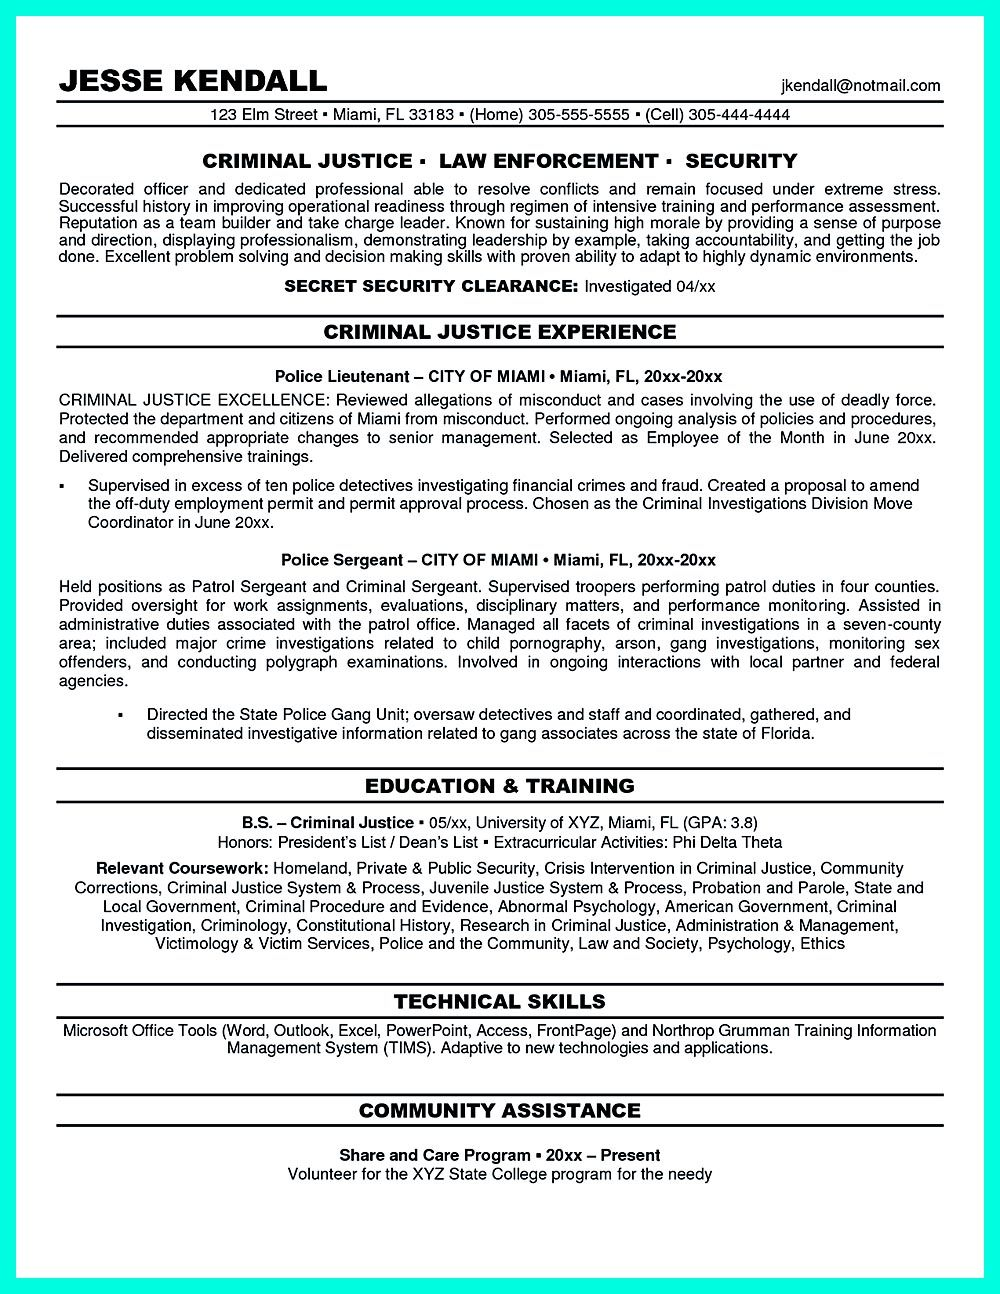 criminal justice resume uses summary section of the qualifications to highlight your experience from the previous - Criminal Justice Resume Samples